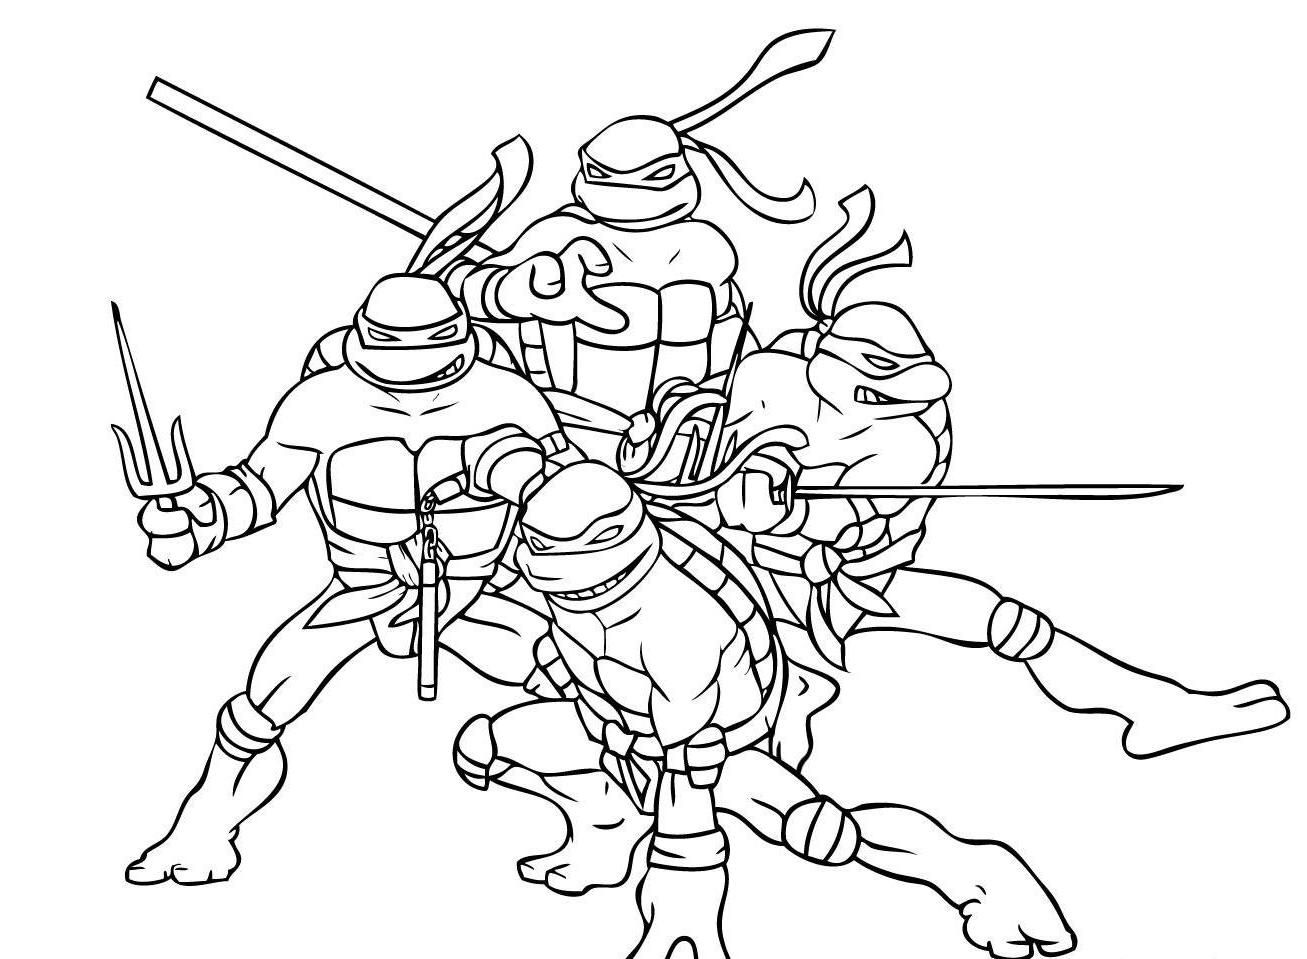 The Ninja Turtles Coloring Pages Kids Pinterest Ninja turtles